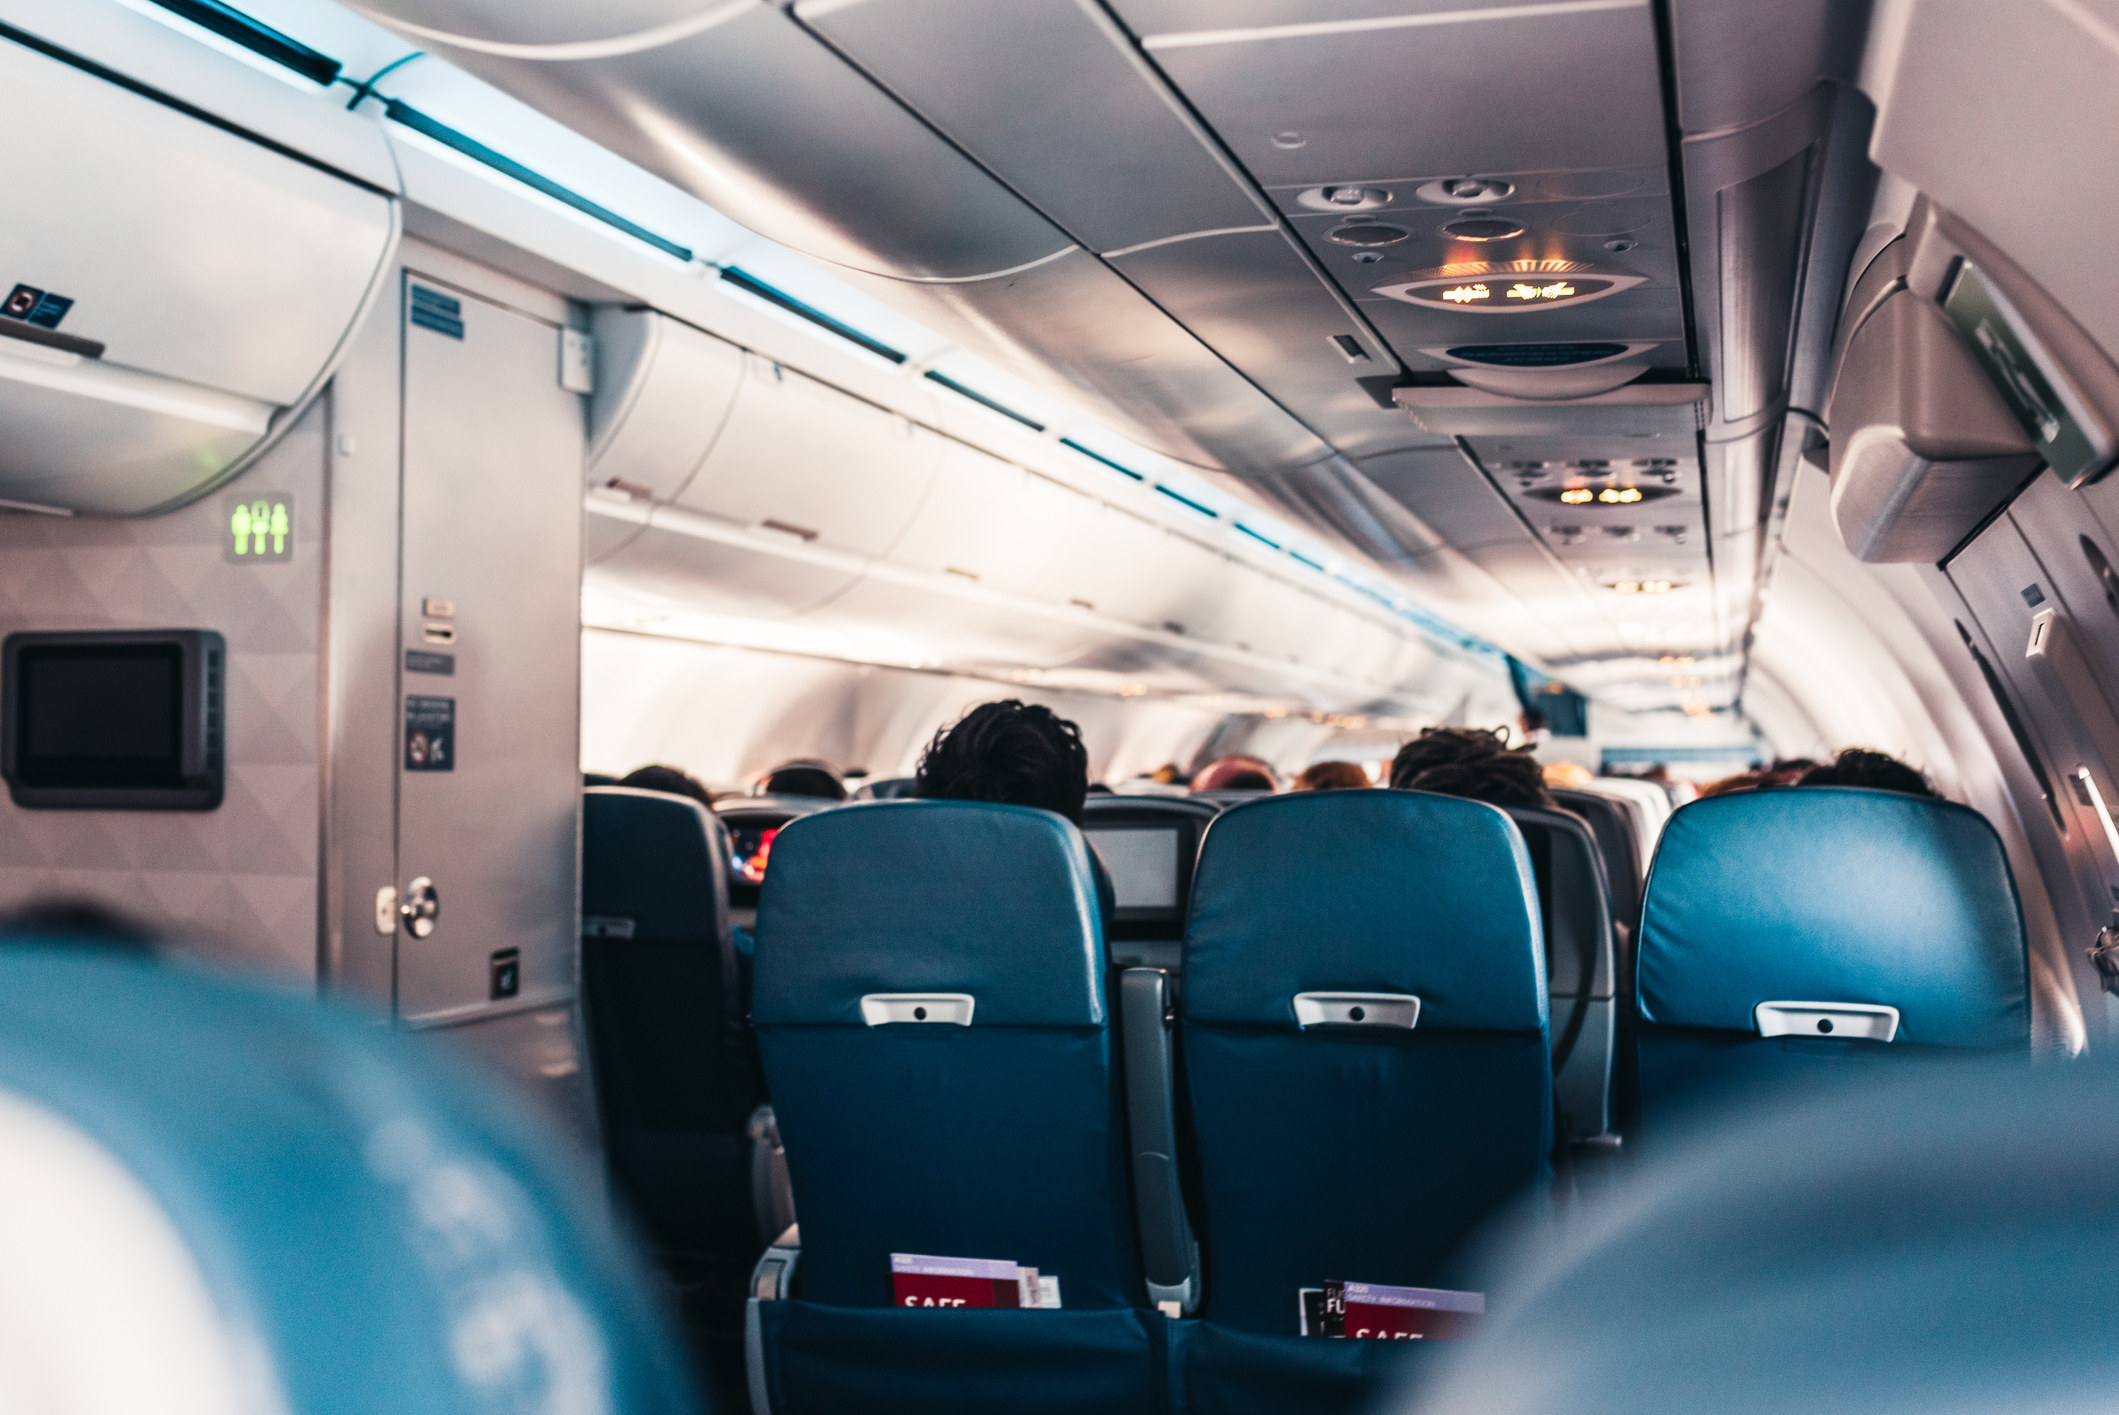 a commercial airplane full of people